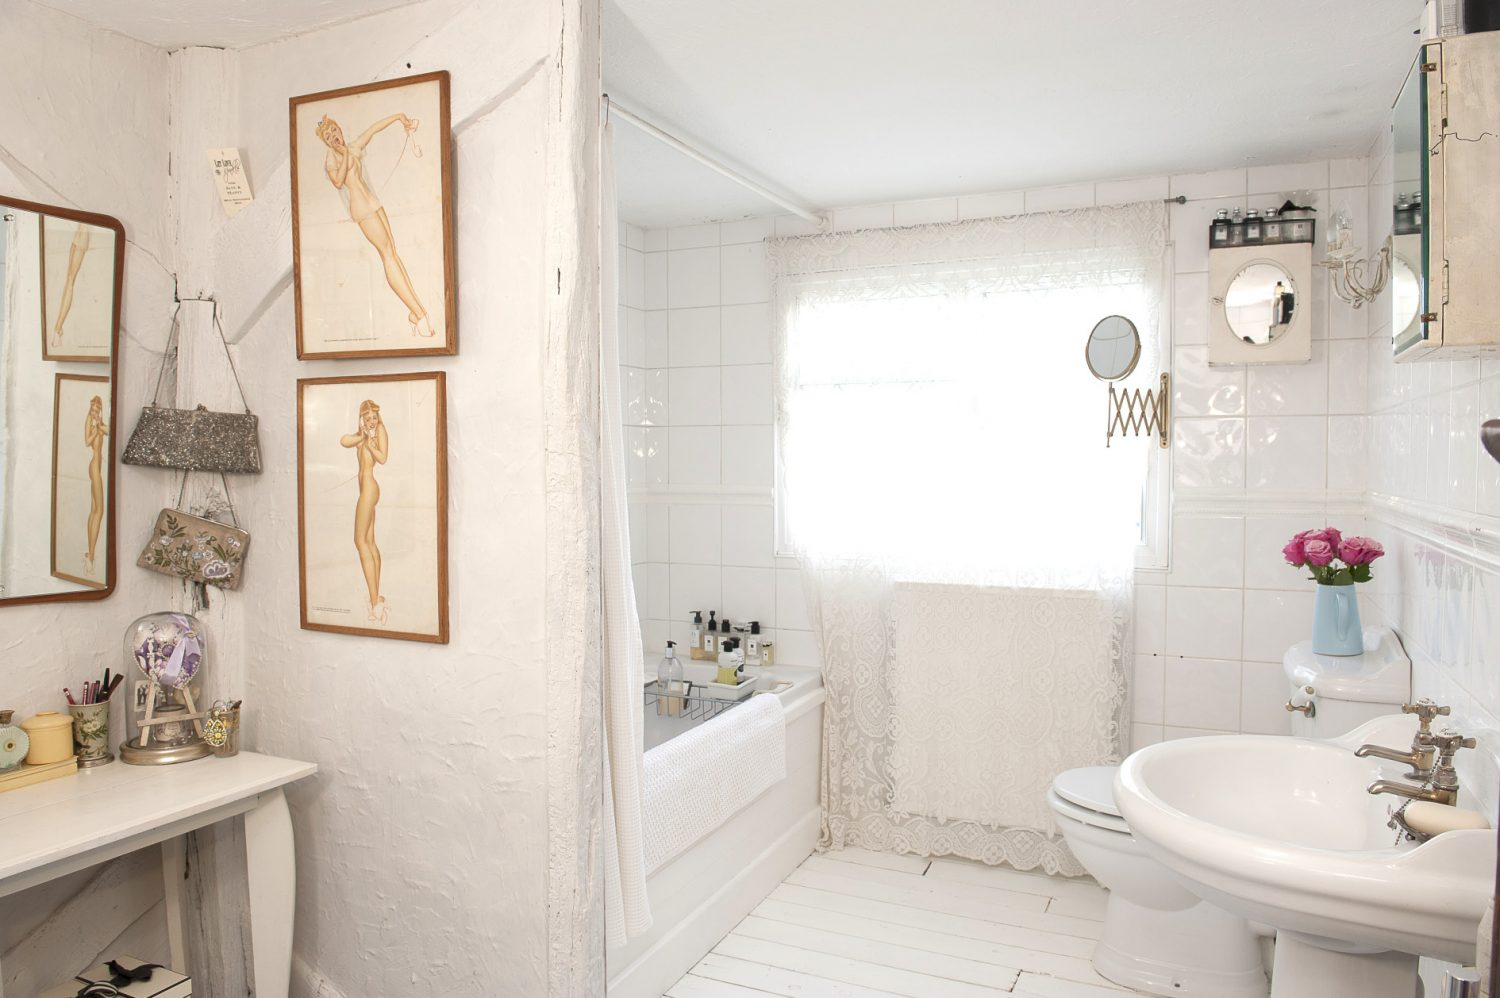 Across the corridor from the master bedroom, the all-white bathroom, filled with Jo Malone goodies, is a serene and inviting space in which to relax after a long day at work